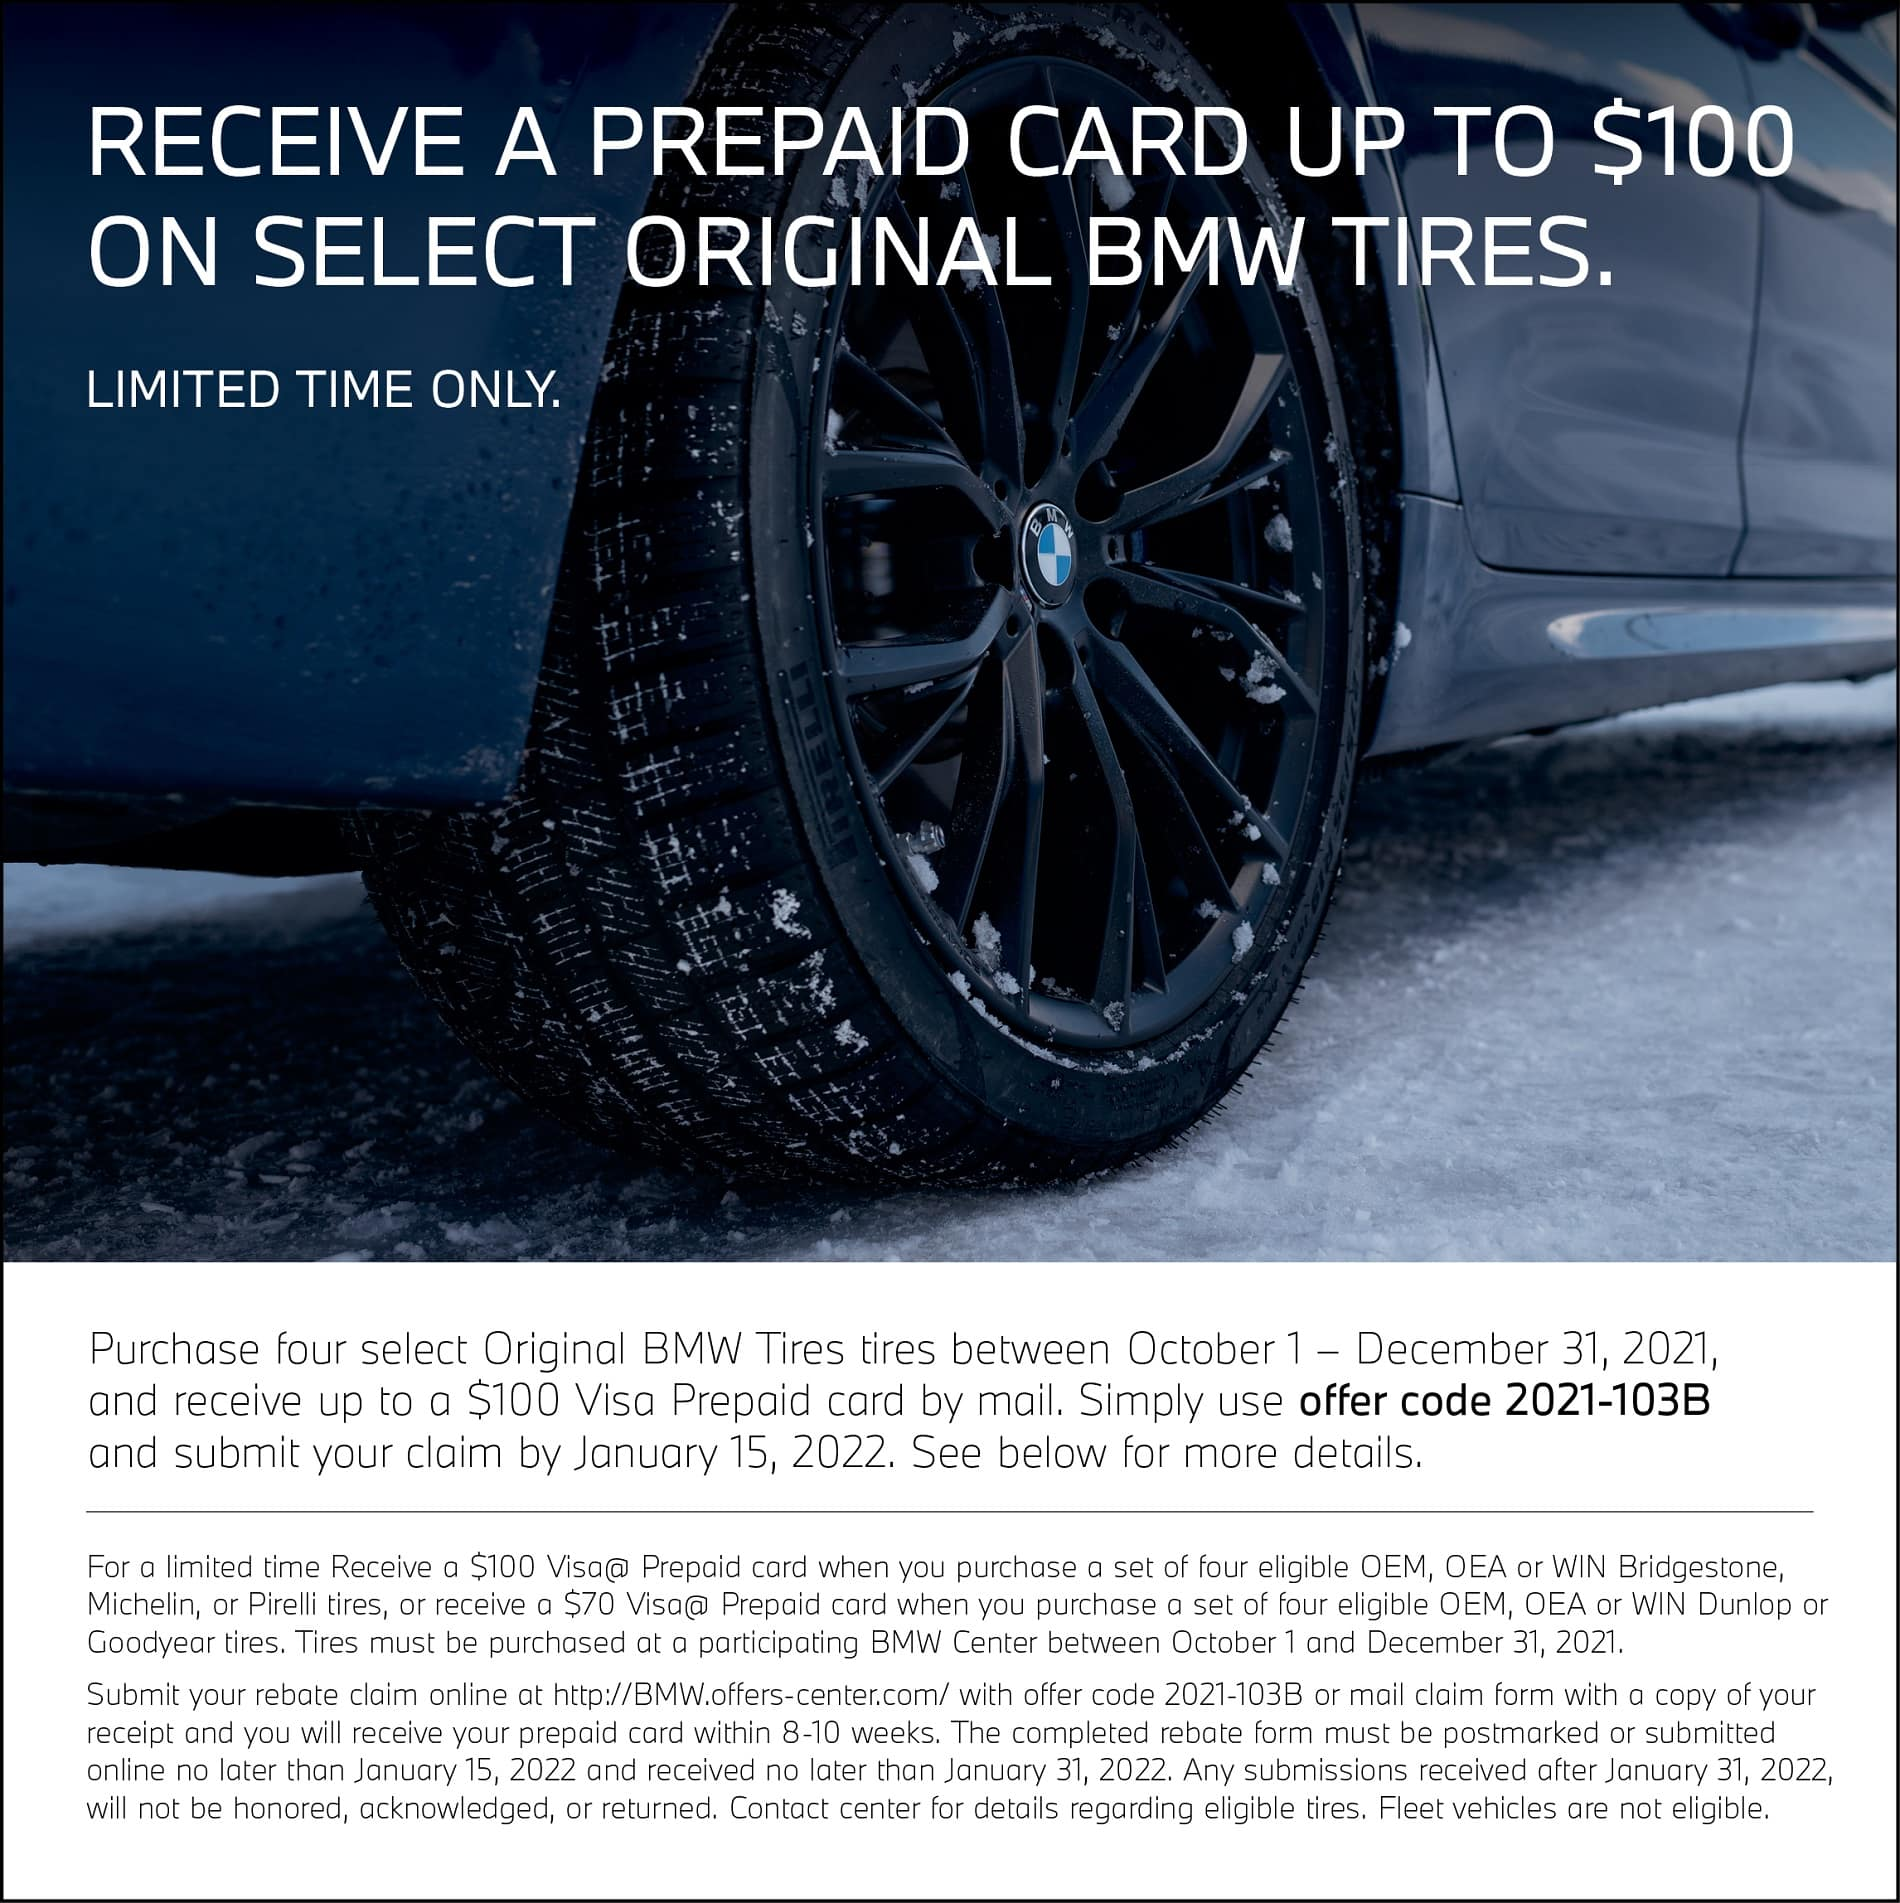 Tire Rebate Special. Get a prepaid card for $199. See dealer for complete details.